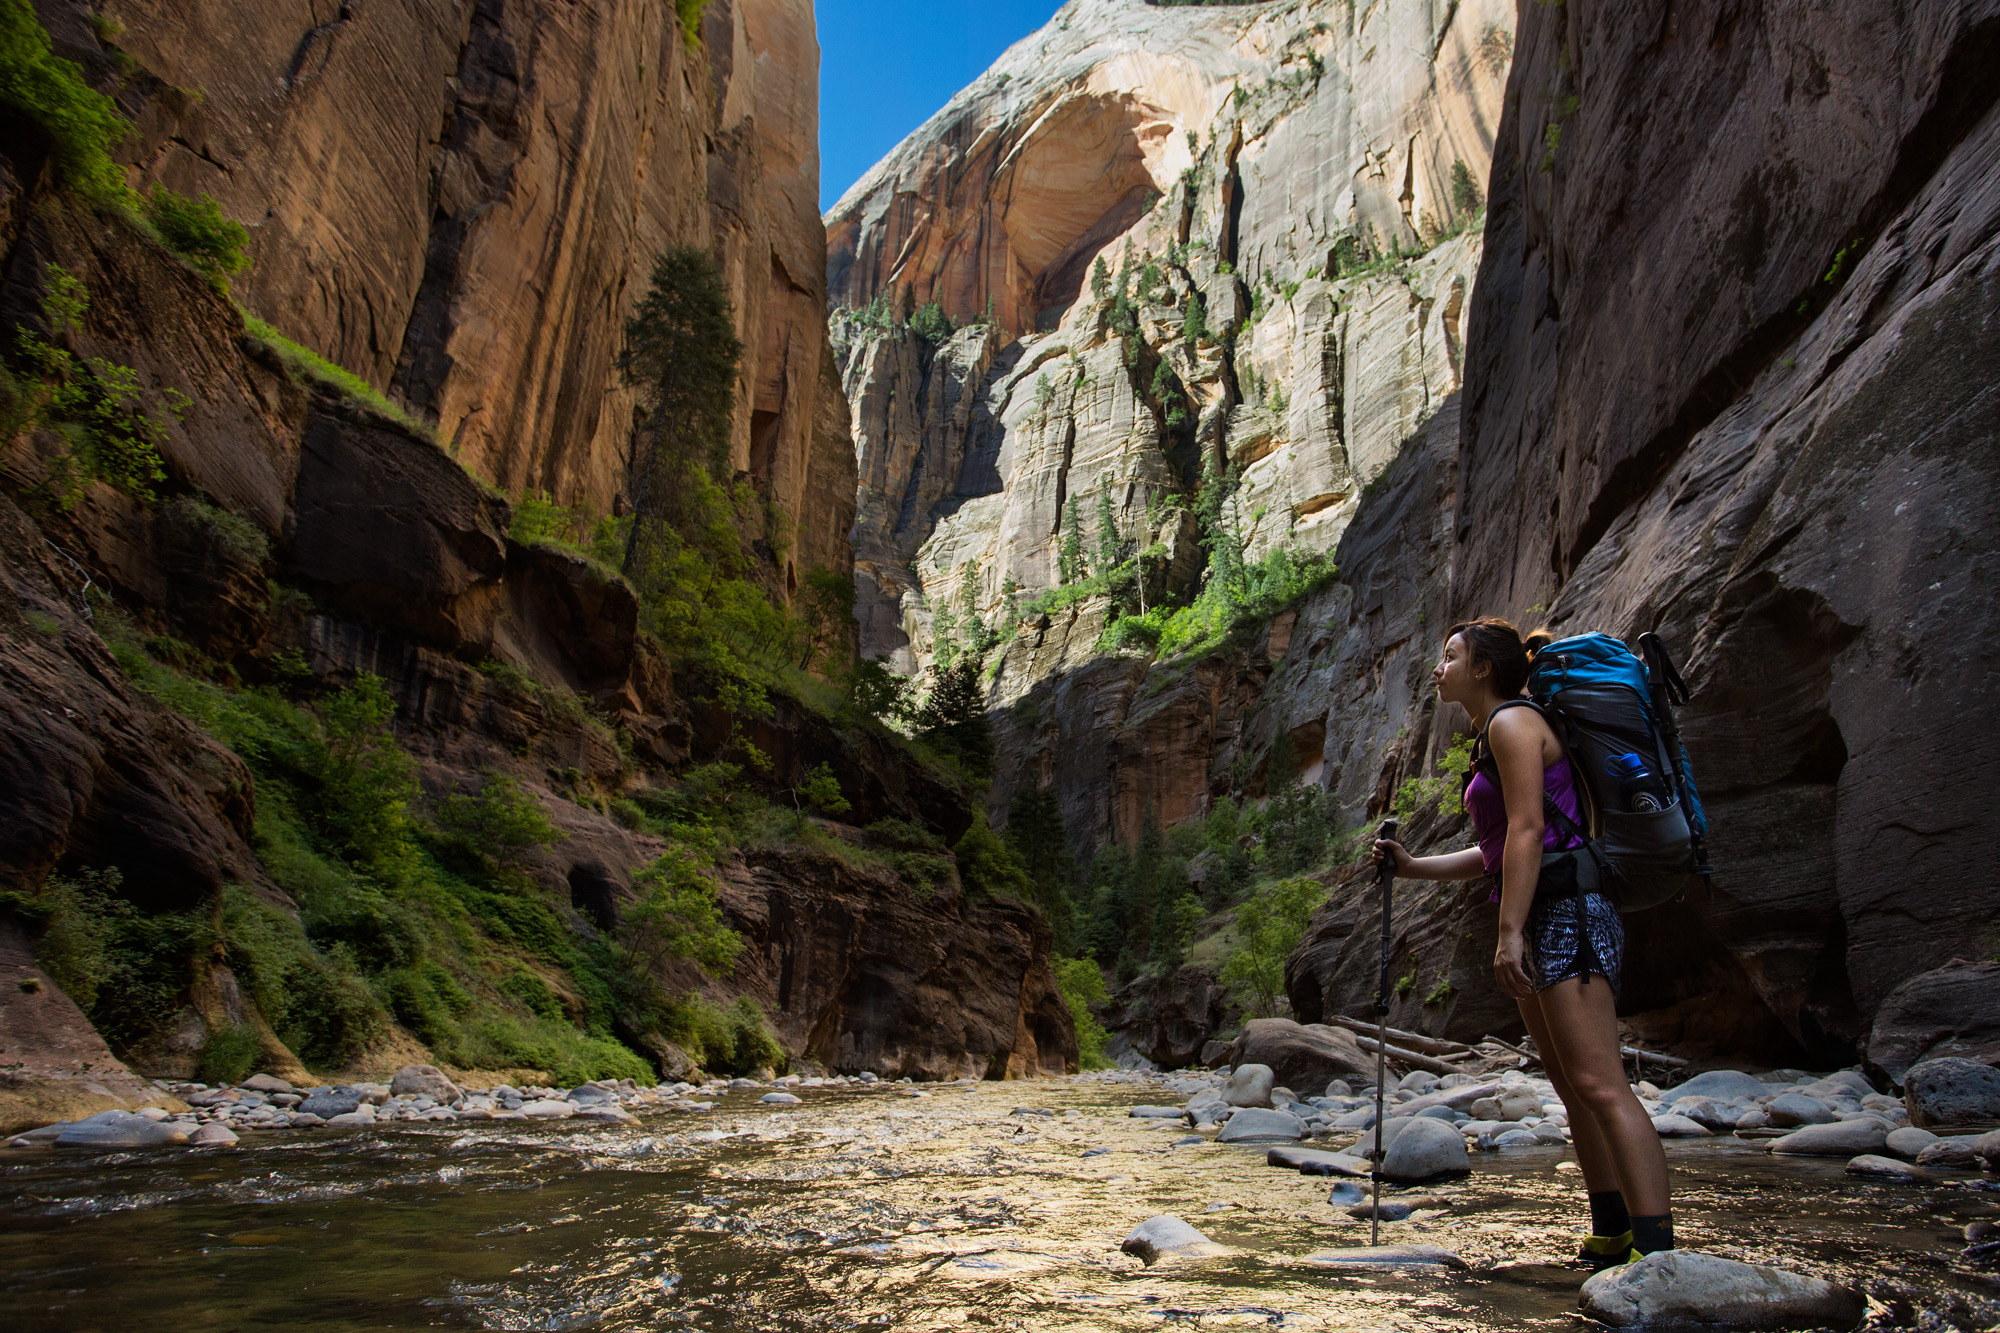 A backpacker pauses to admire a view of the Virgin River Narrows in Zion National Park.